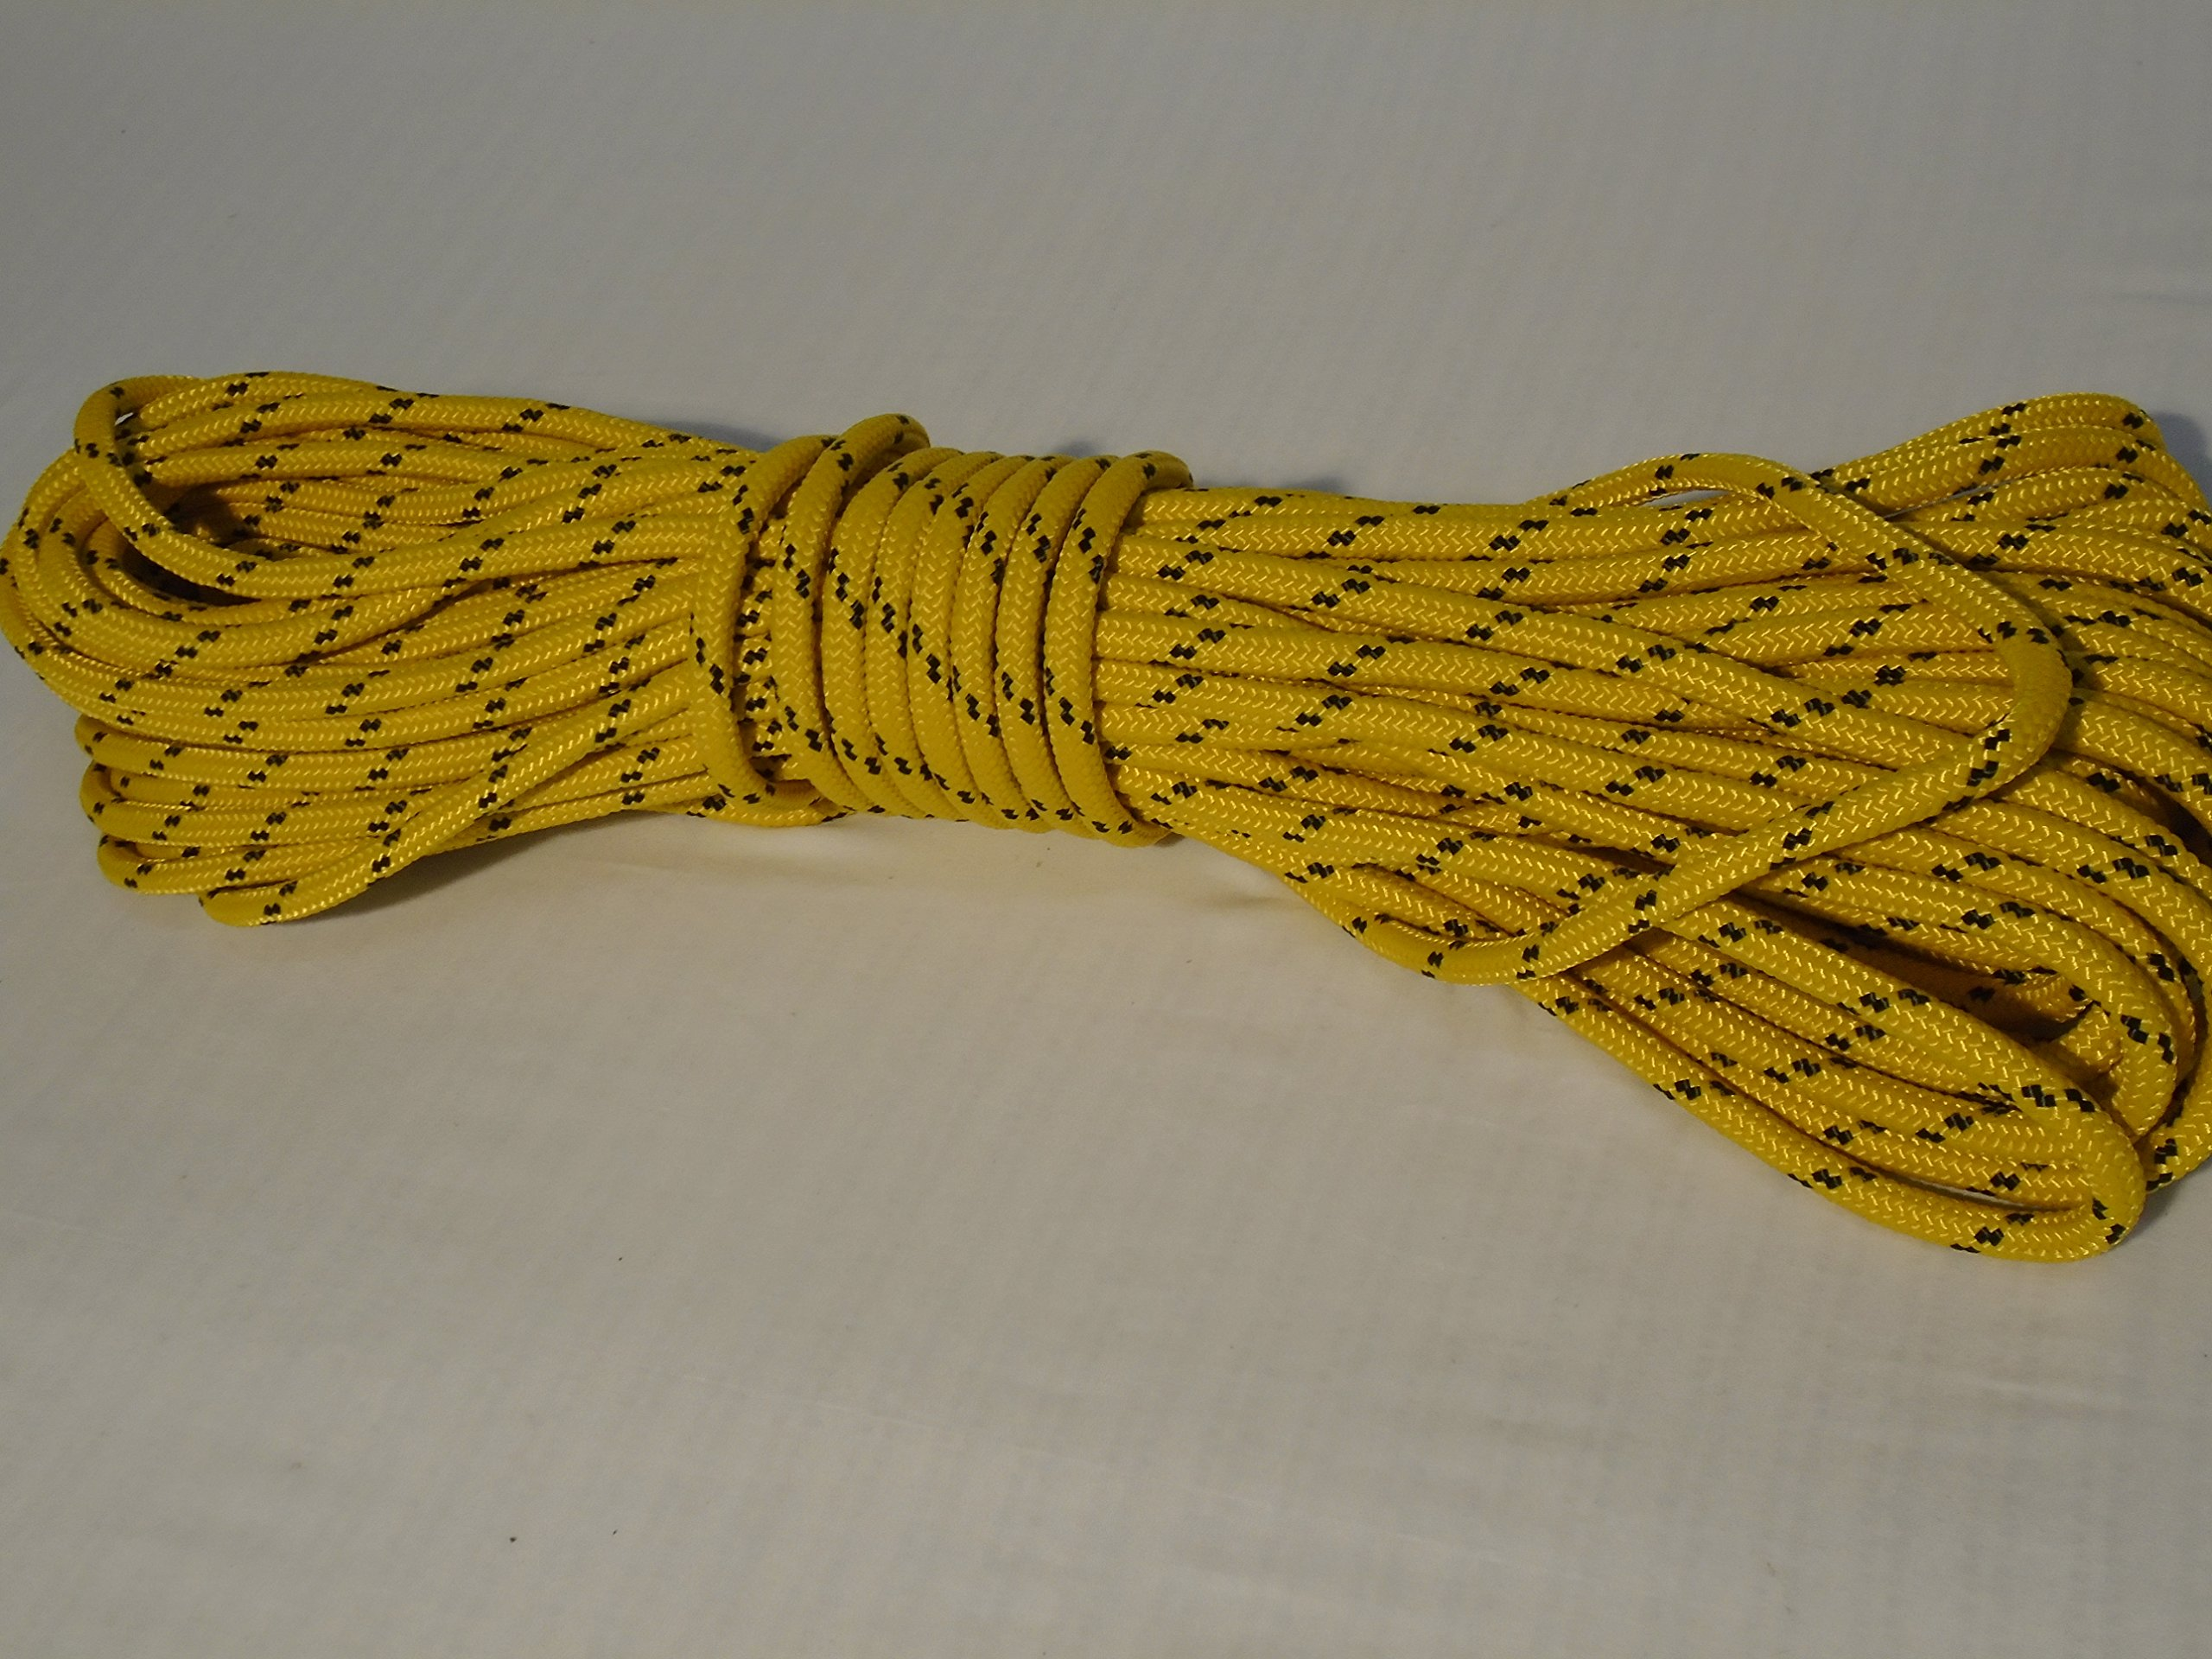 Blue Ox Rope 5/16'' by 100' Gold Double Braided Polyester Halyard Line